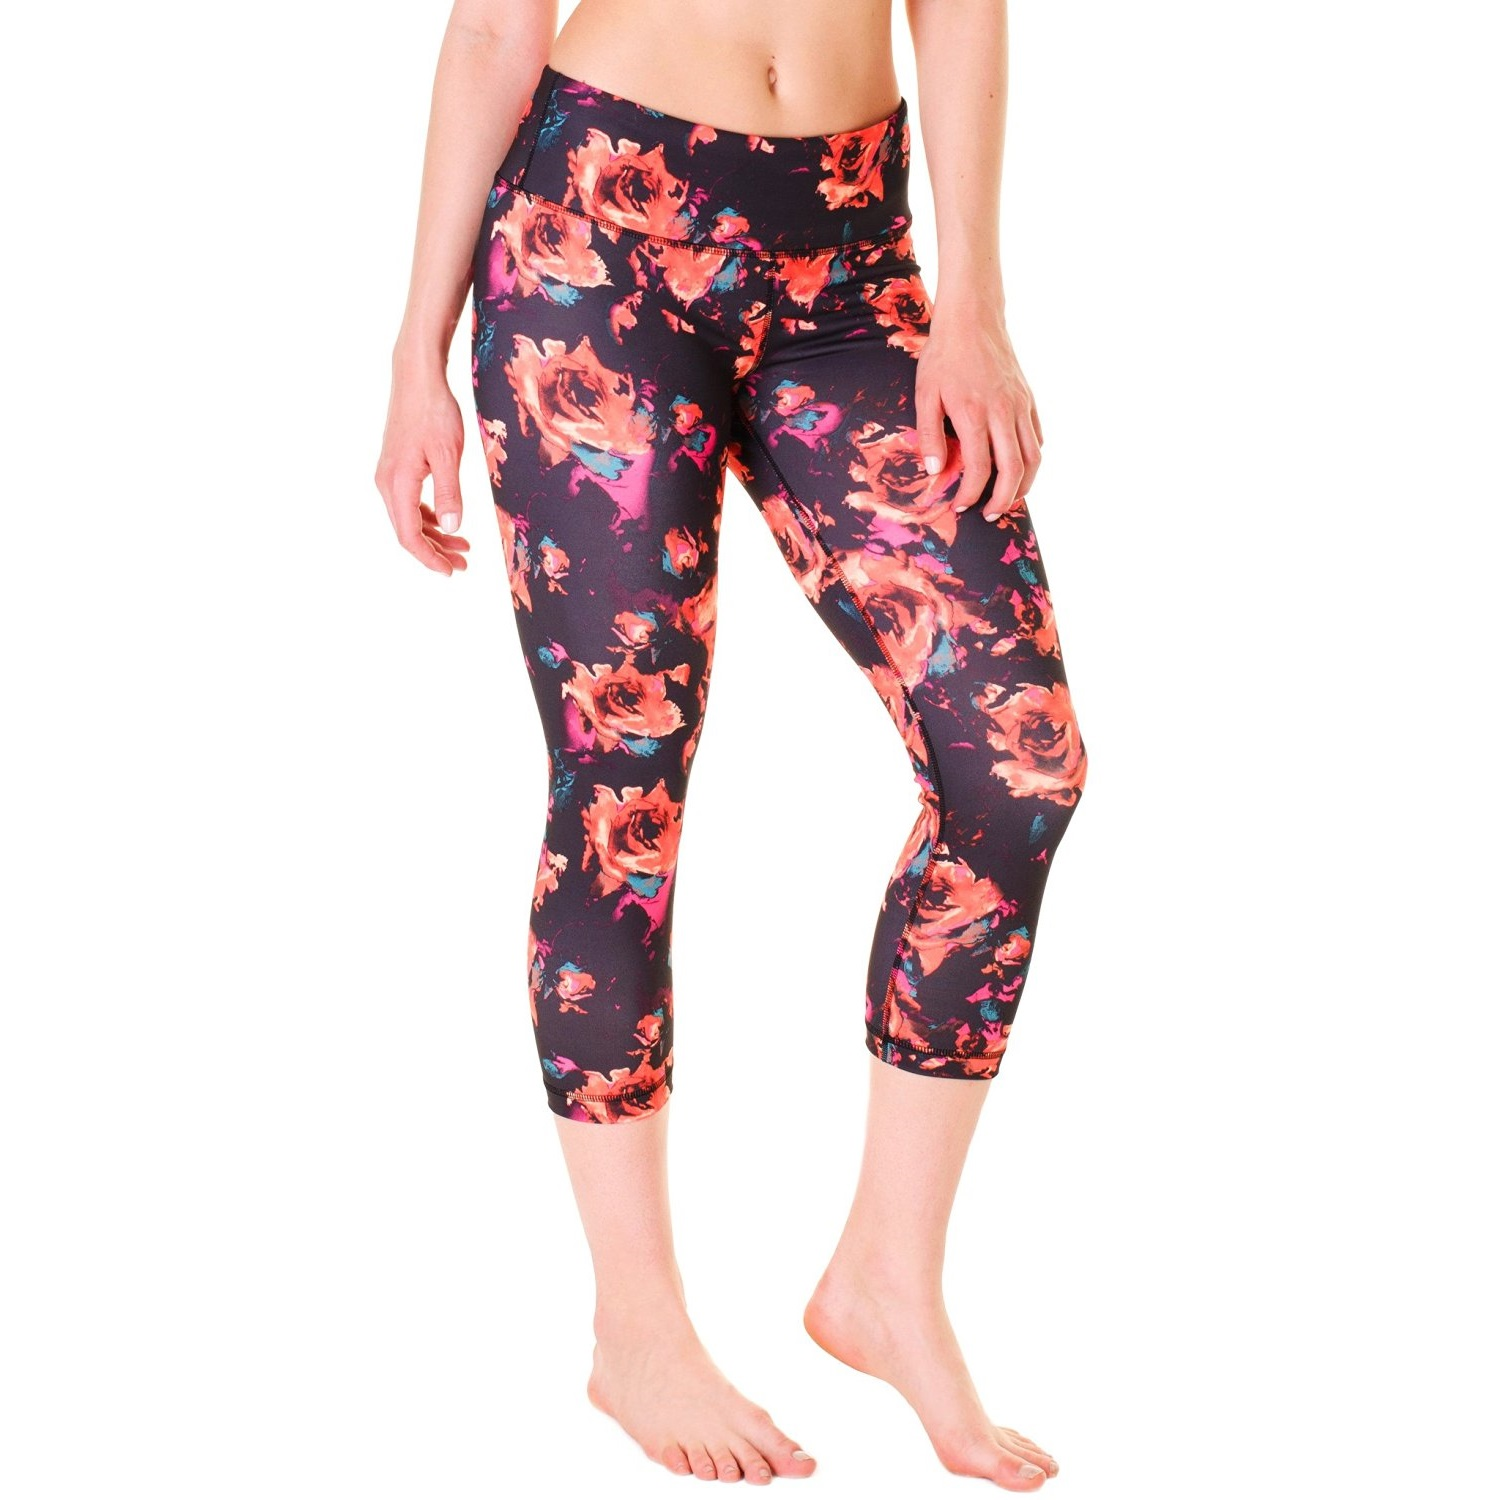 90 Degree by Reflex Women's Printed Yoga Capri Pants